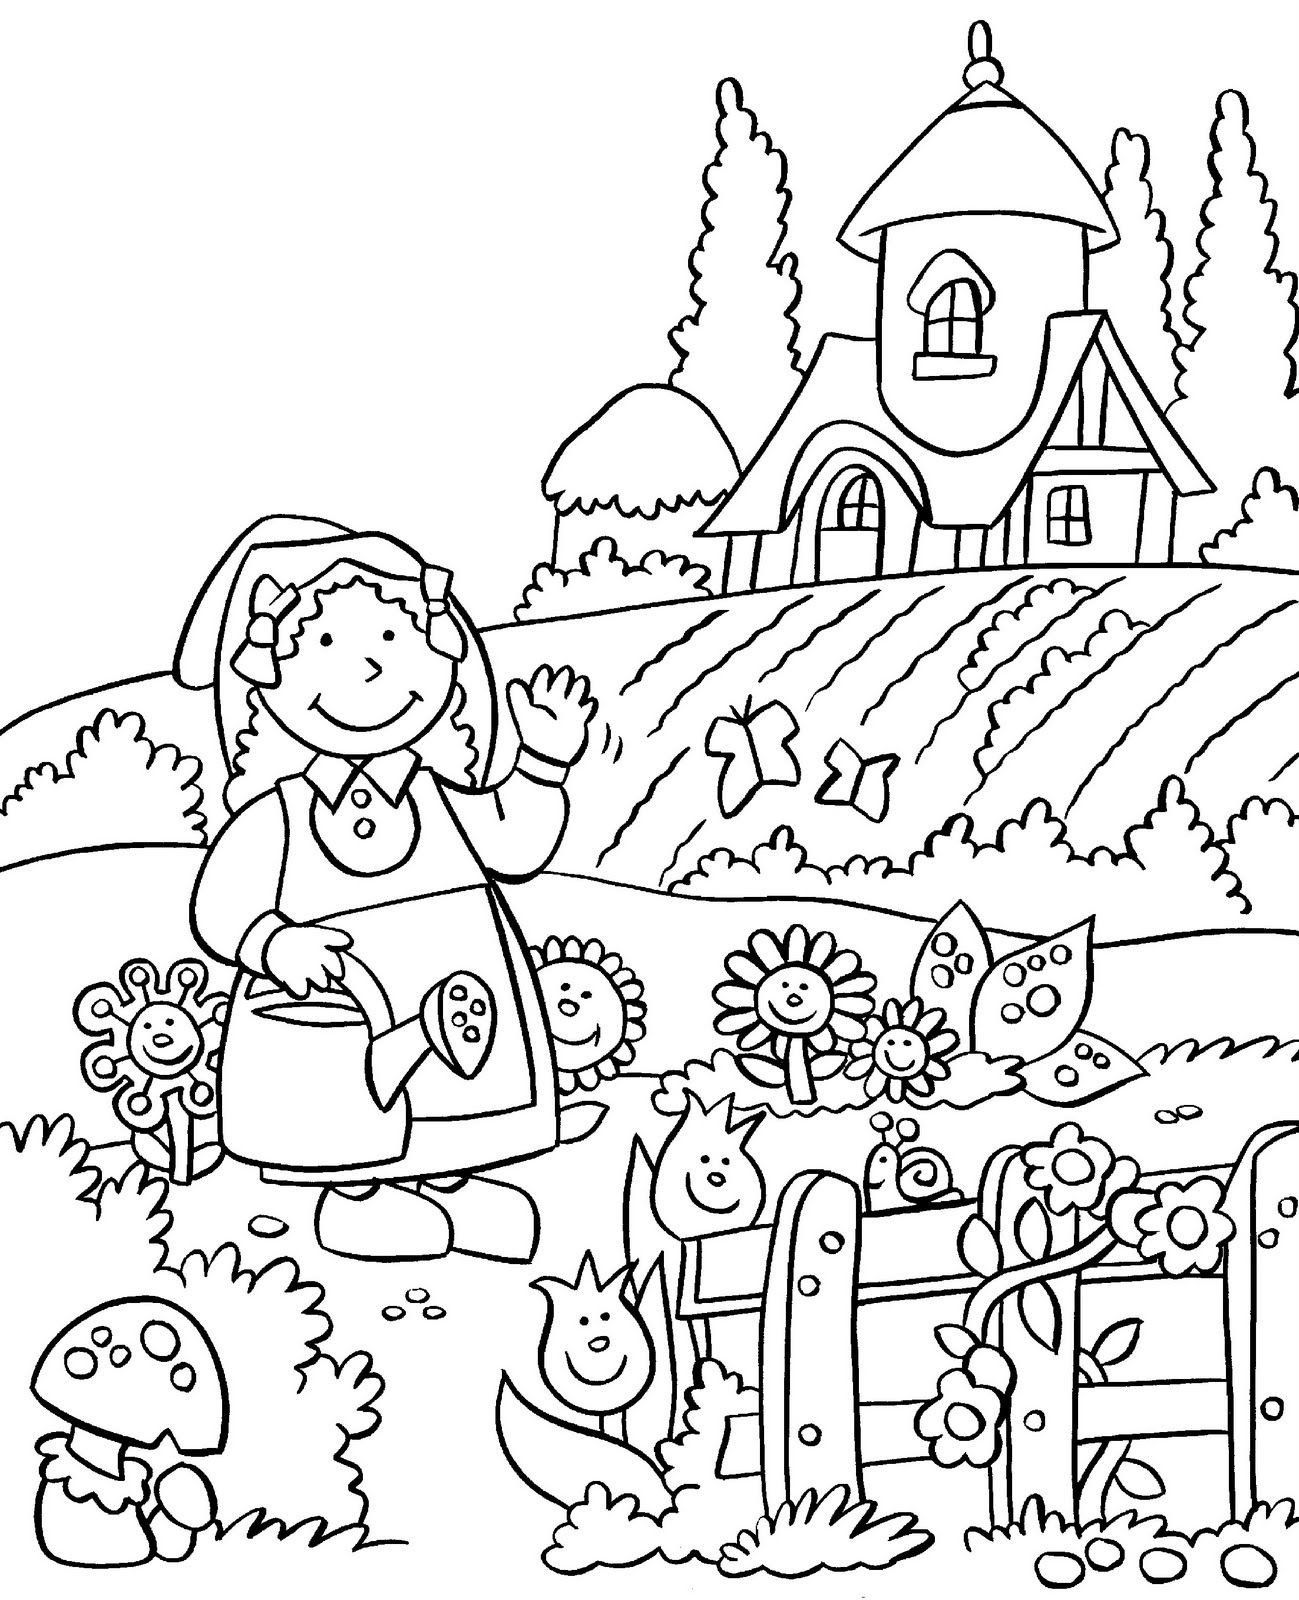 Garden Coloring Pages For Kids My Little House Anna And The Flower Garden Coloring Pages In 2020 Garden Coloring Pages Coloring Pages Coloring Books